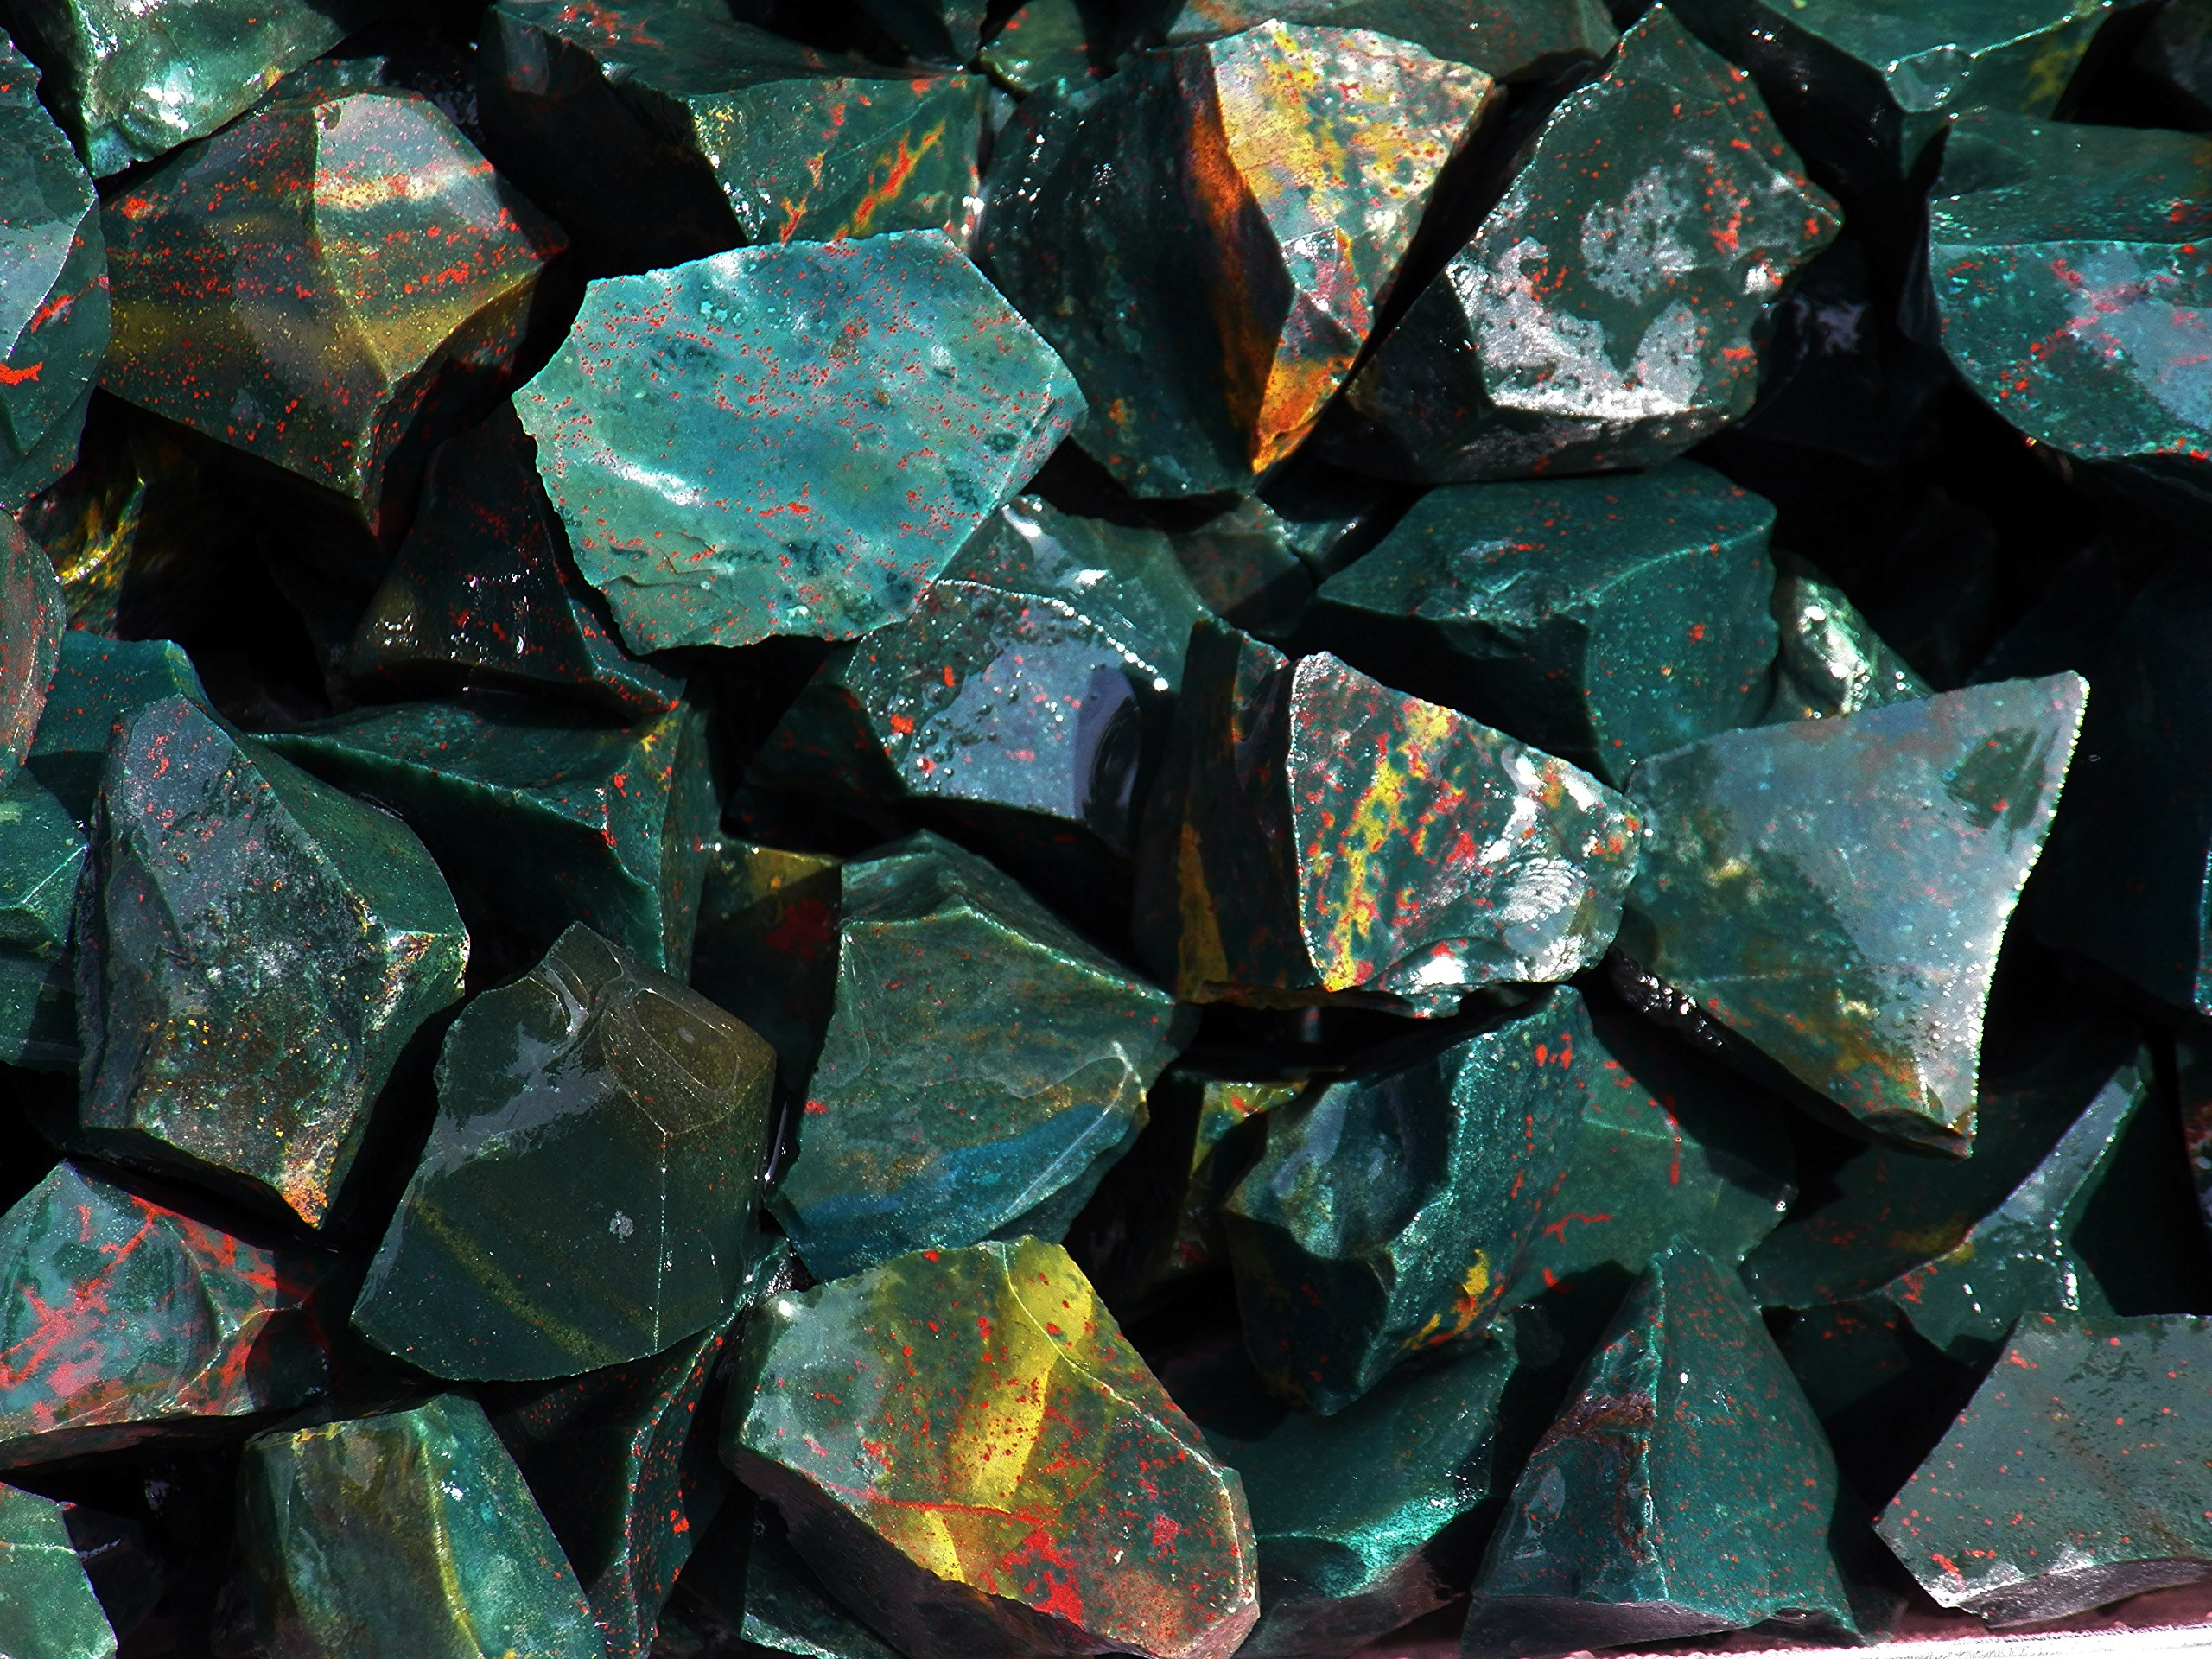 Fundamental Rockhound Products: Rough BLOODSTONE Natural Bulk Rock for Tumbling Metaphysical Gemstones Healing Crystals * Wholesale Lot * ... from India (2 lb)